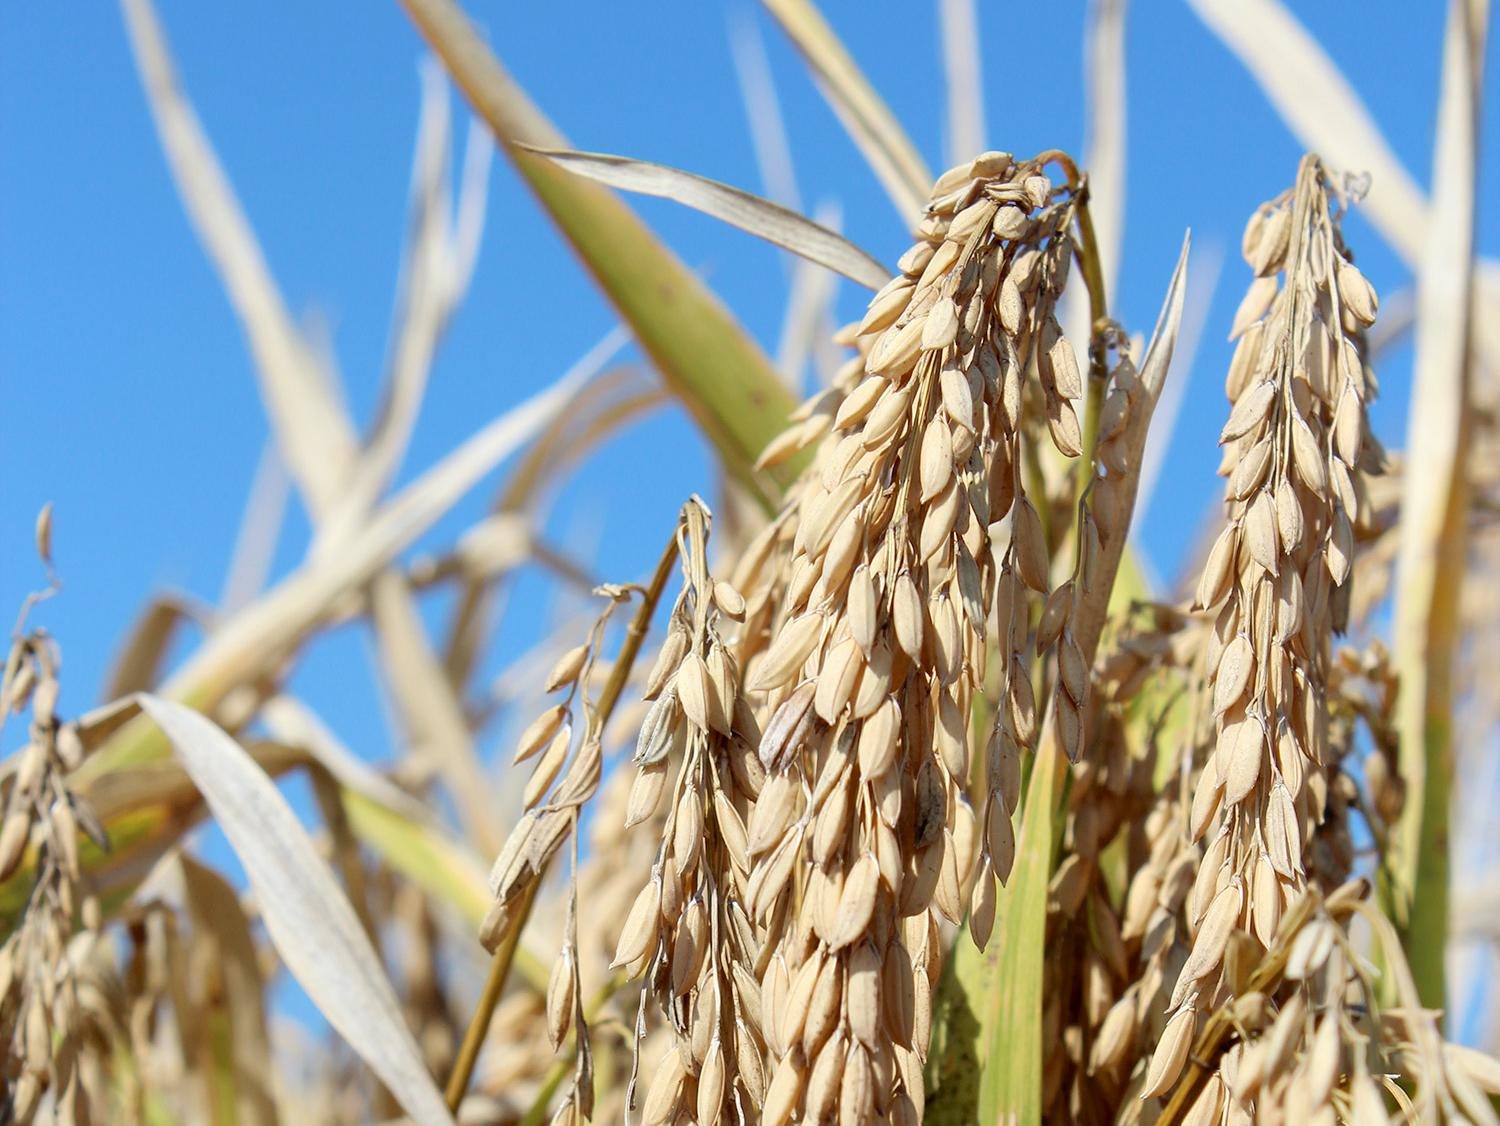 Even after a late start, a favorable growing season allowed for a timely harvest of Mississippi's rice, such as this grown at the Delta Research and Extension Center in Stoneville. The U.S. Department of Agriculture reports the crop was 96 percent harvested by Oct. 20, 2013. (Photo by MSU Ag Communications/Keri Collins Lewis)